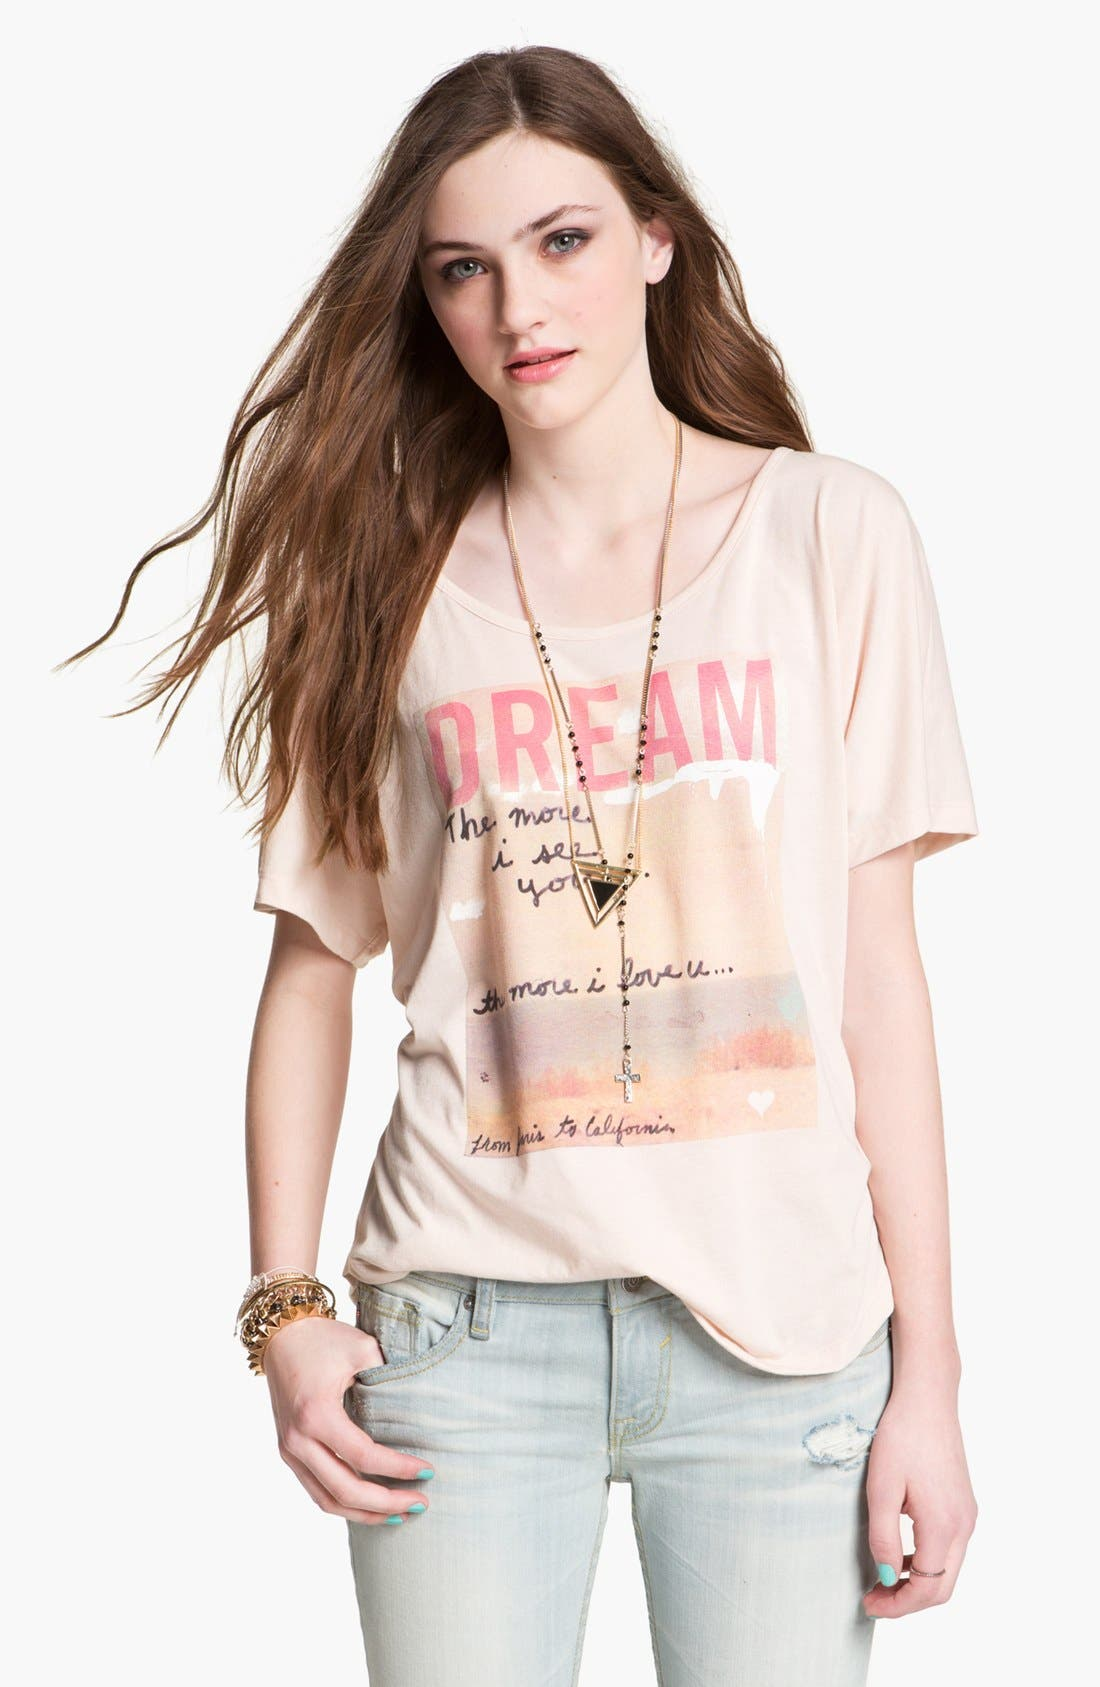 Alternate Image 1 Selected - Malibu Native 'Dream' Screenprint Tee (Juniors)